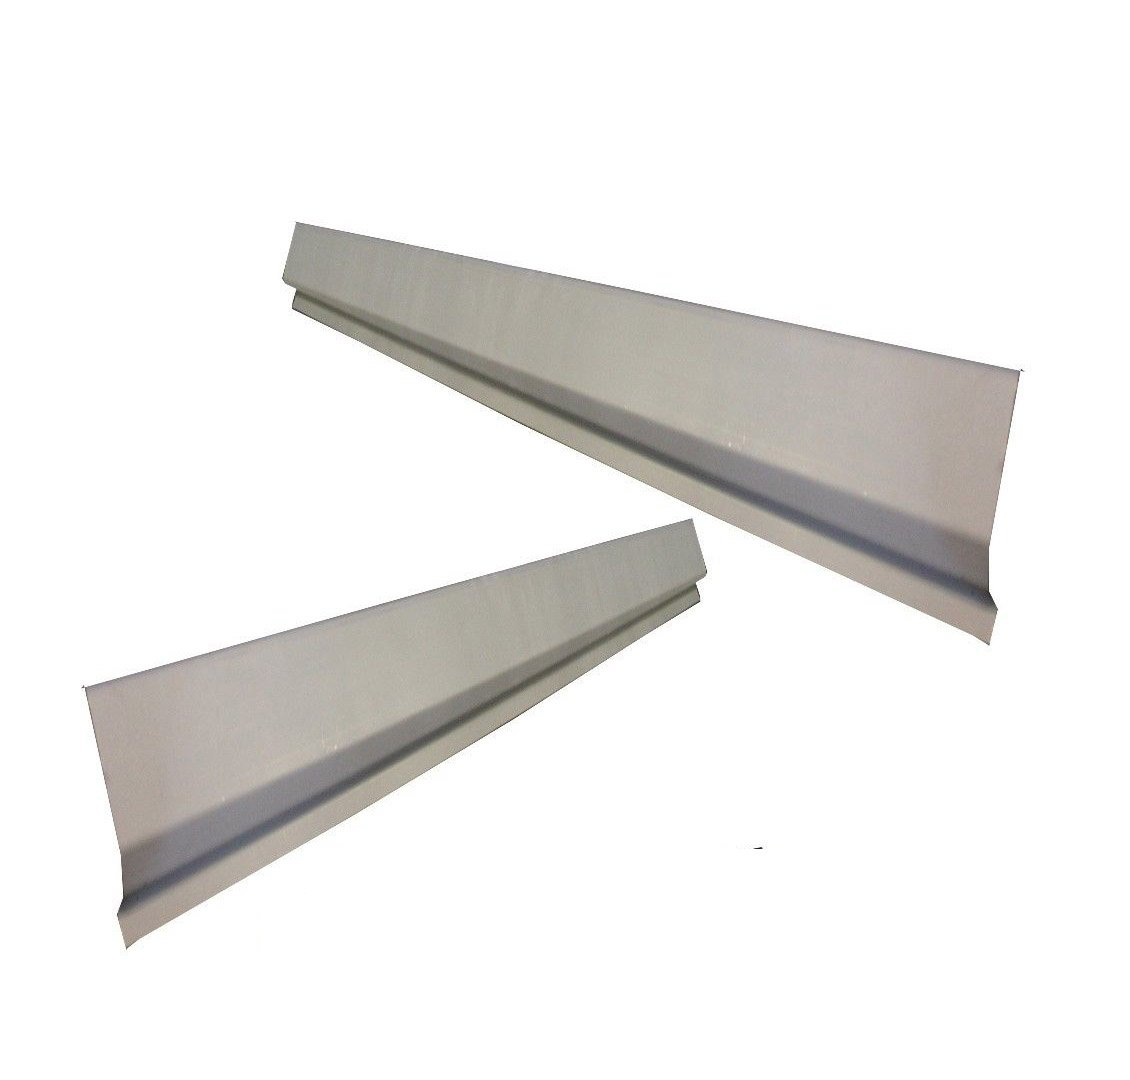 Motor City Sheet Metal - Works With 2002-2009 Dodge Ram 4 Door Quad Cab Outer Rocker Panel Pair